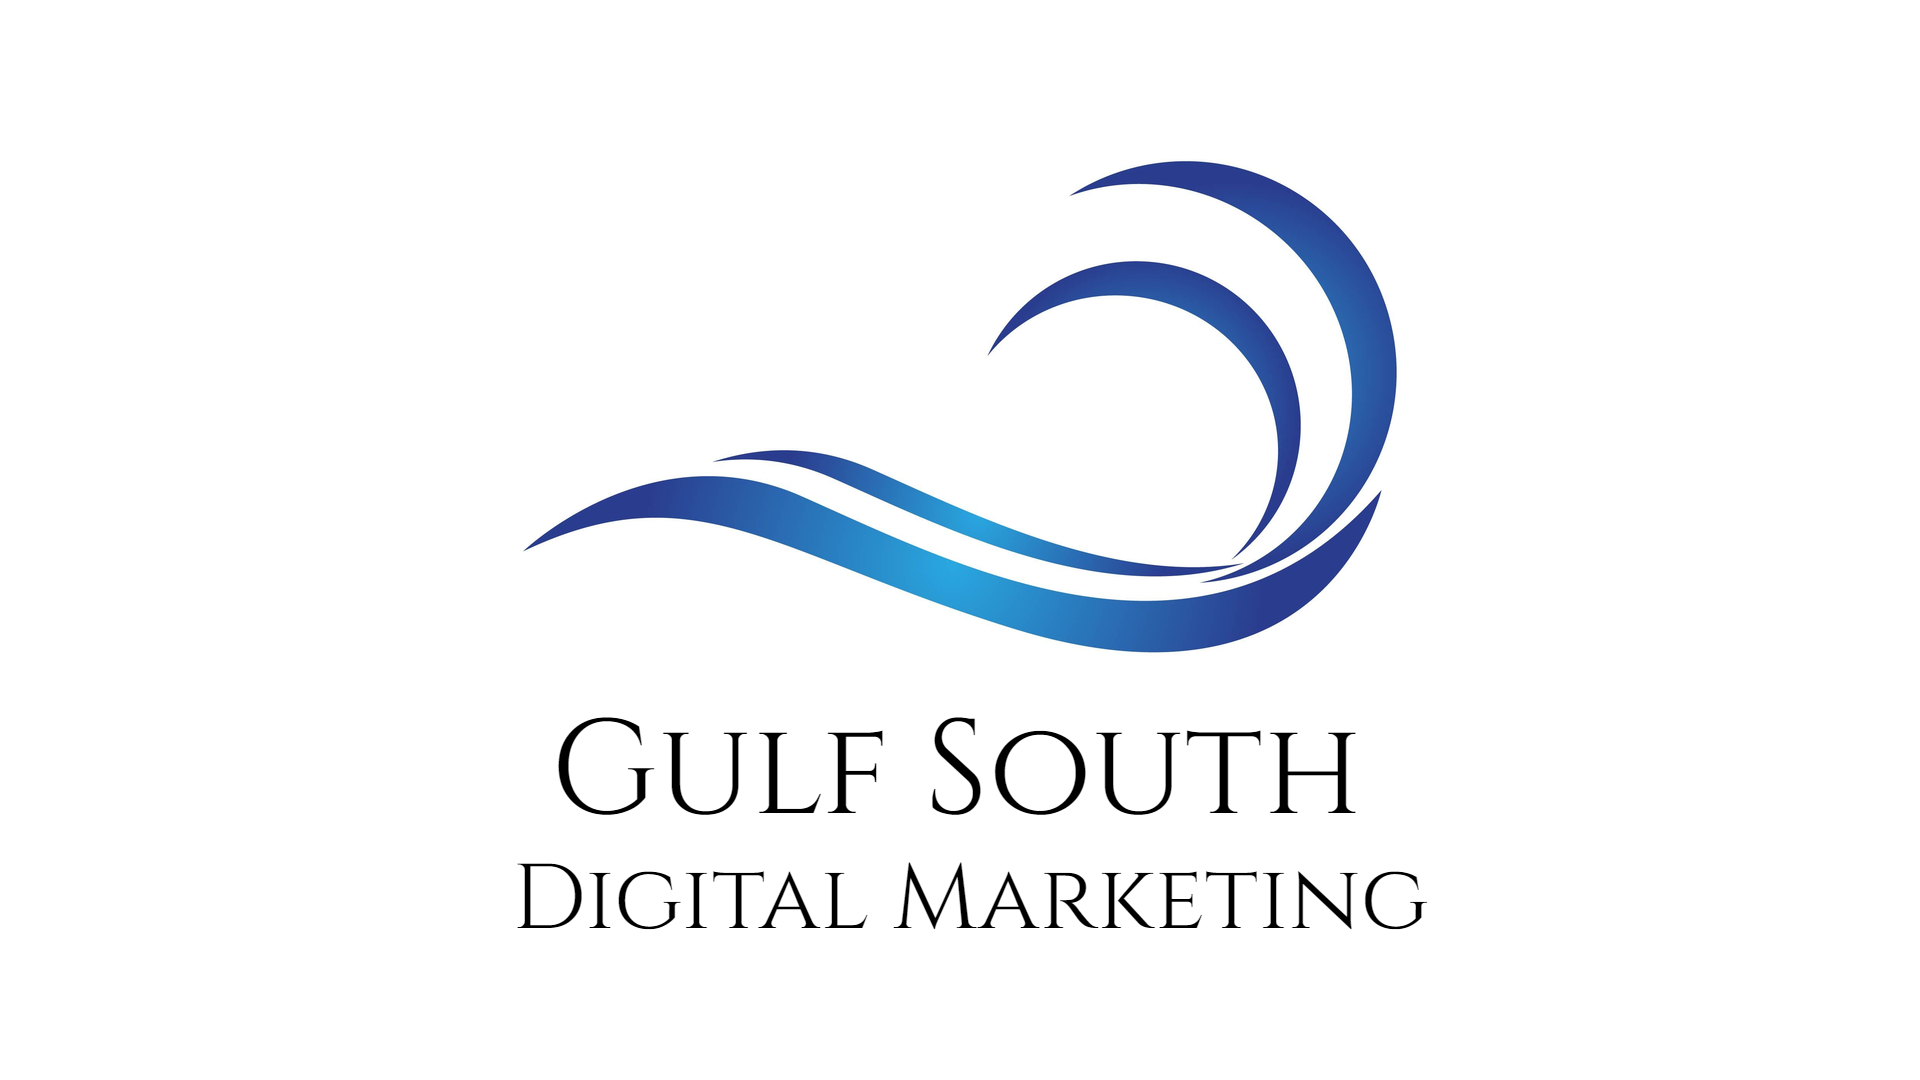 Gulf South Digital Marketing, LLC